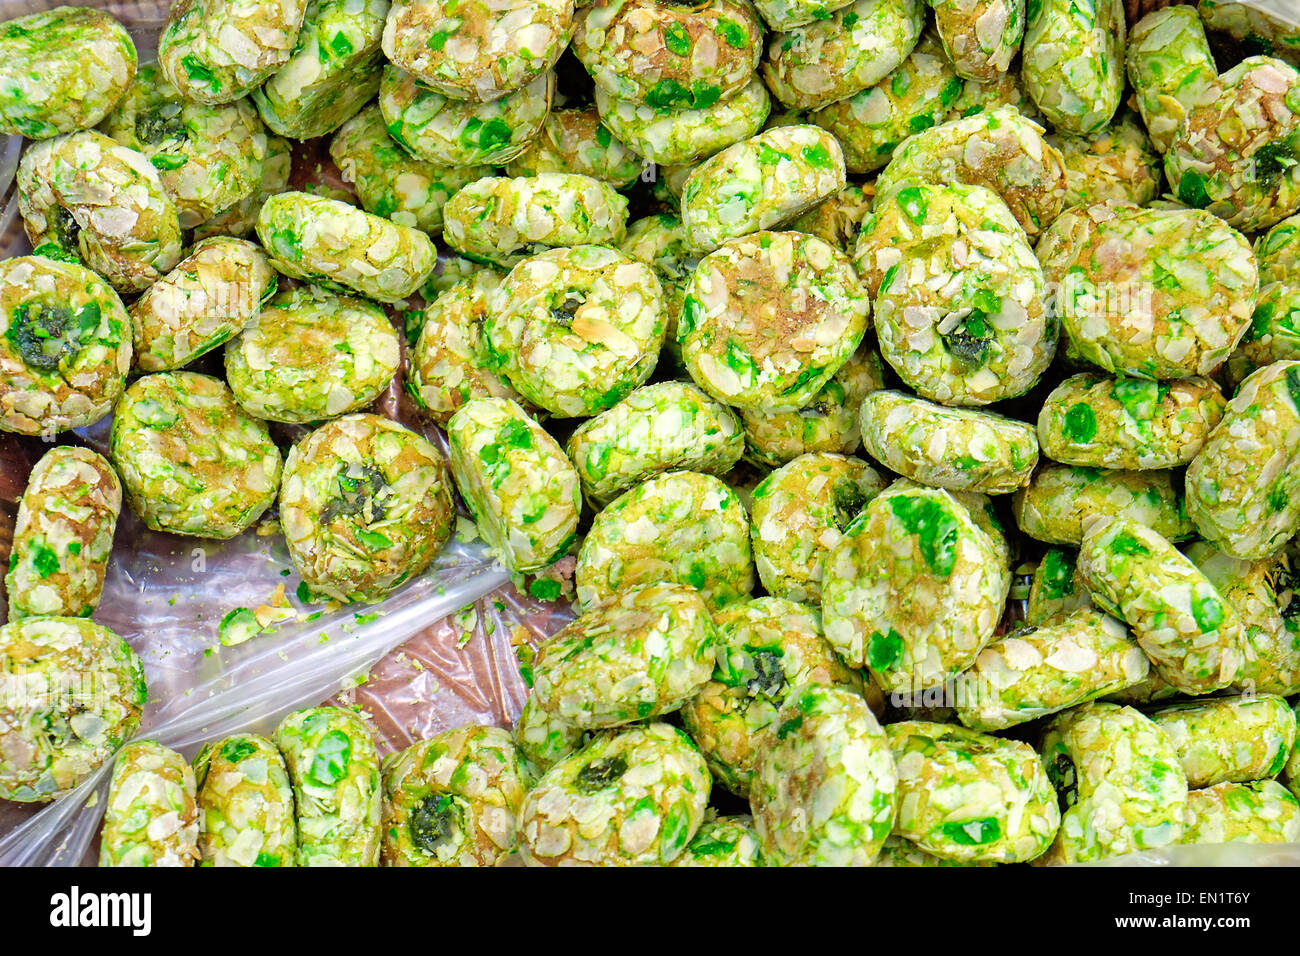 Some green italian pastry for sale at a bakery - Stock Image